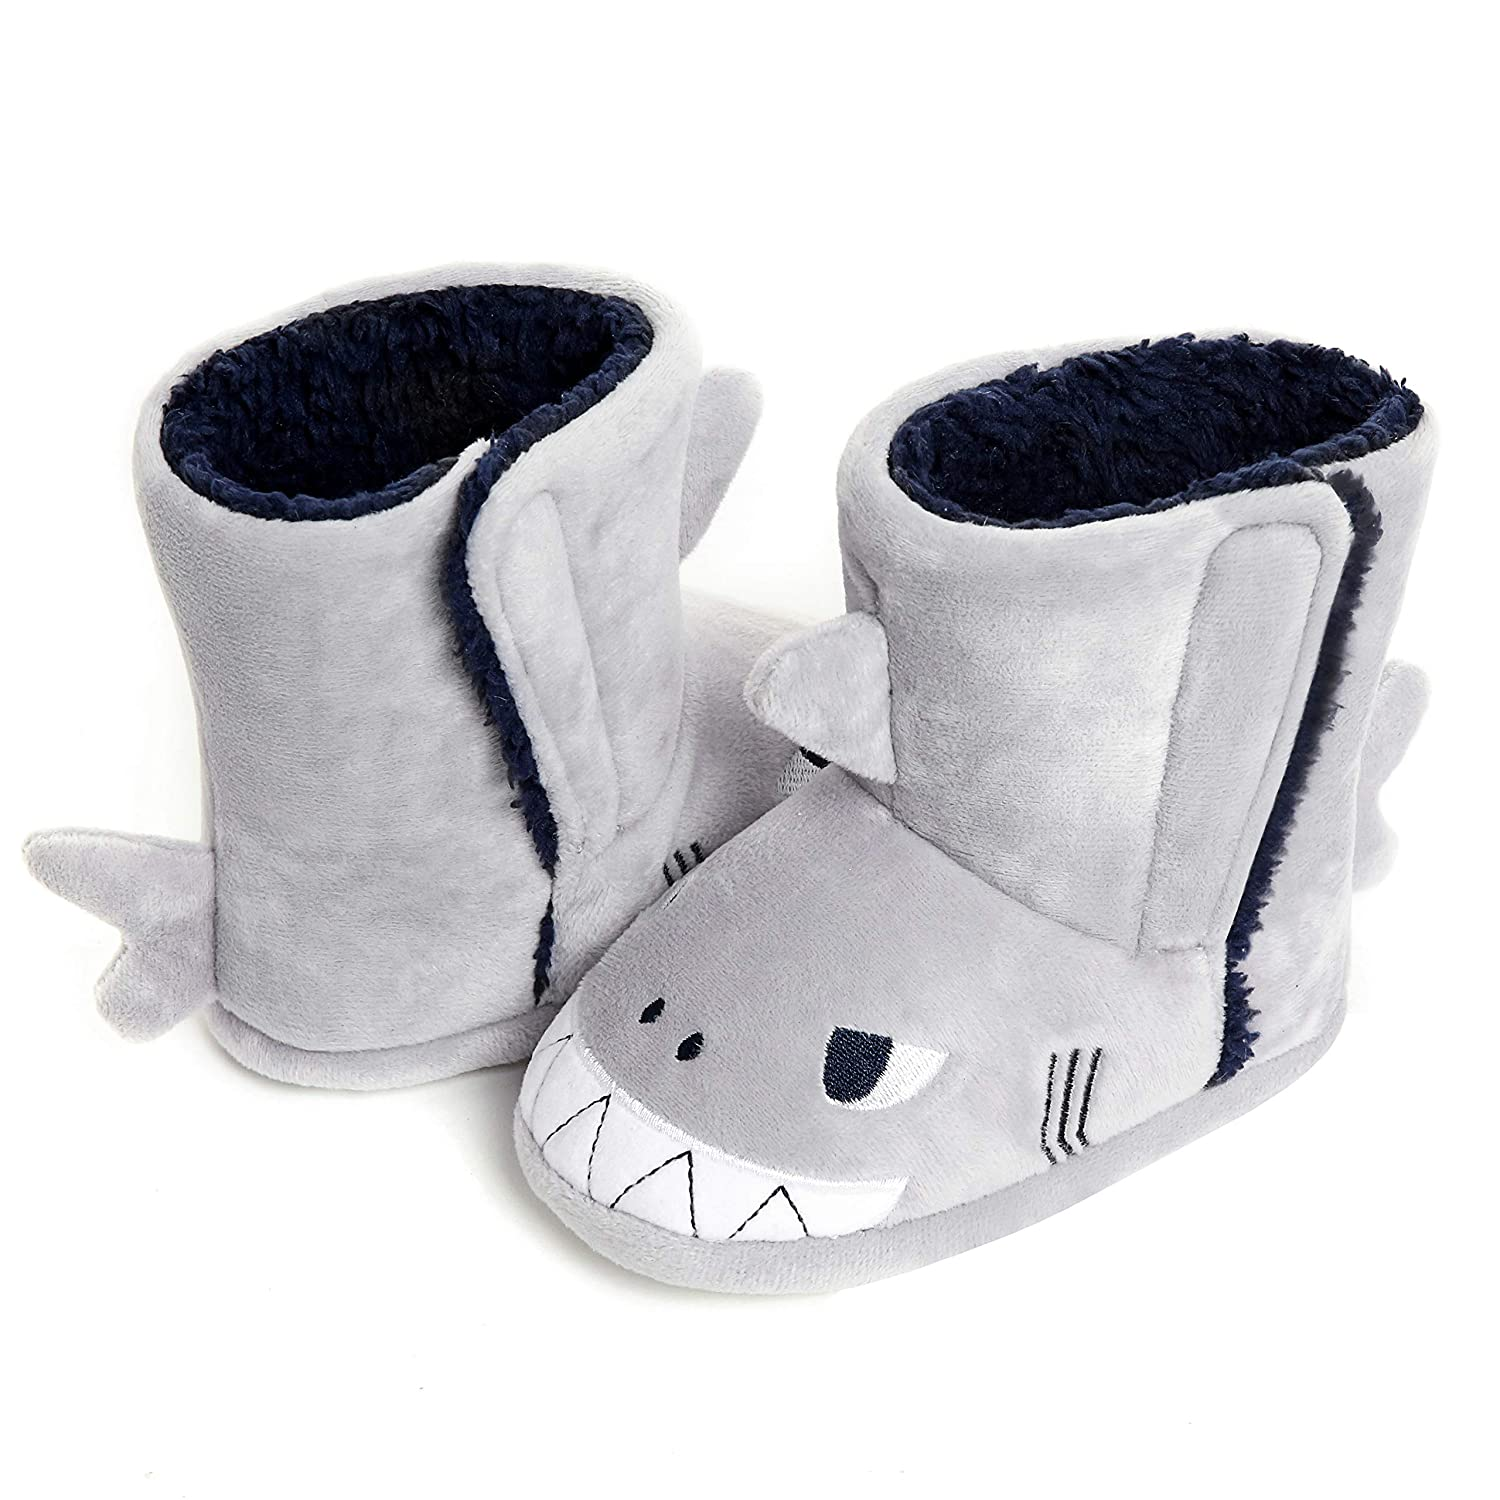 Toddlers Girls Slippers Booties Plush Cute Animal Indoor Winter House Slippers